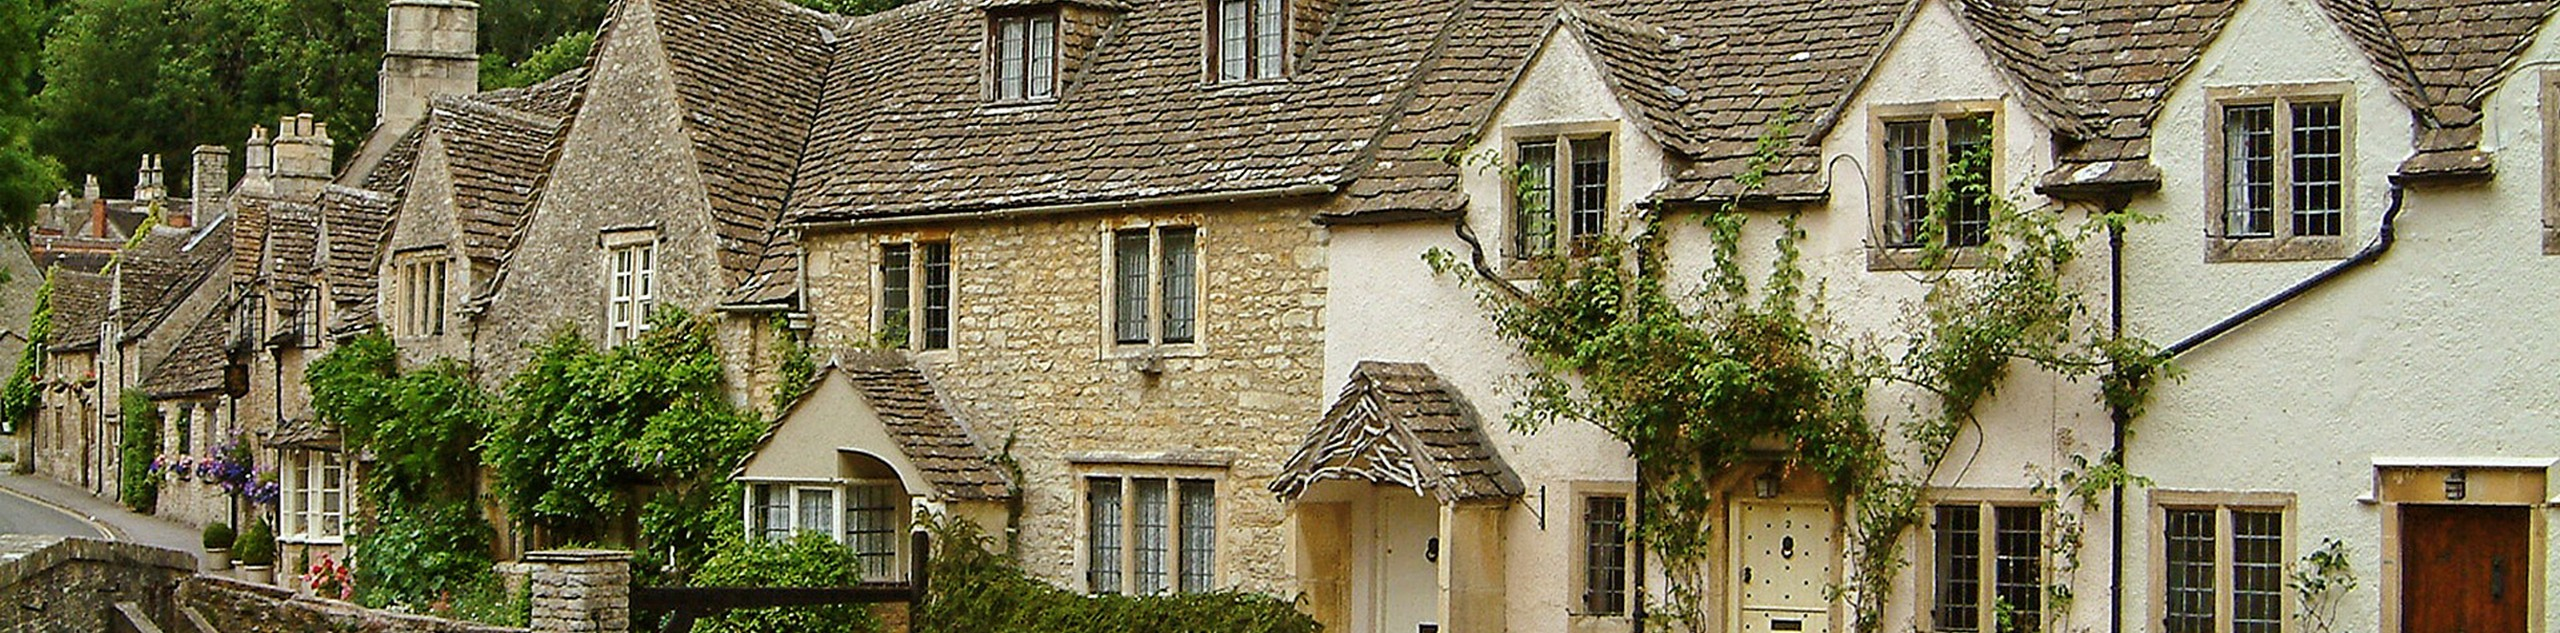 Castle Combe and Nettleton Mill Circular Walk